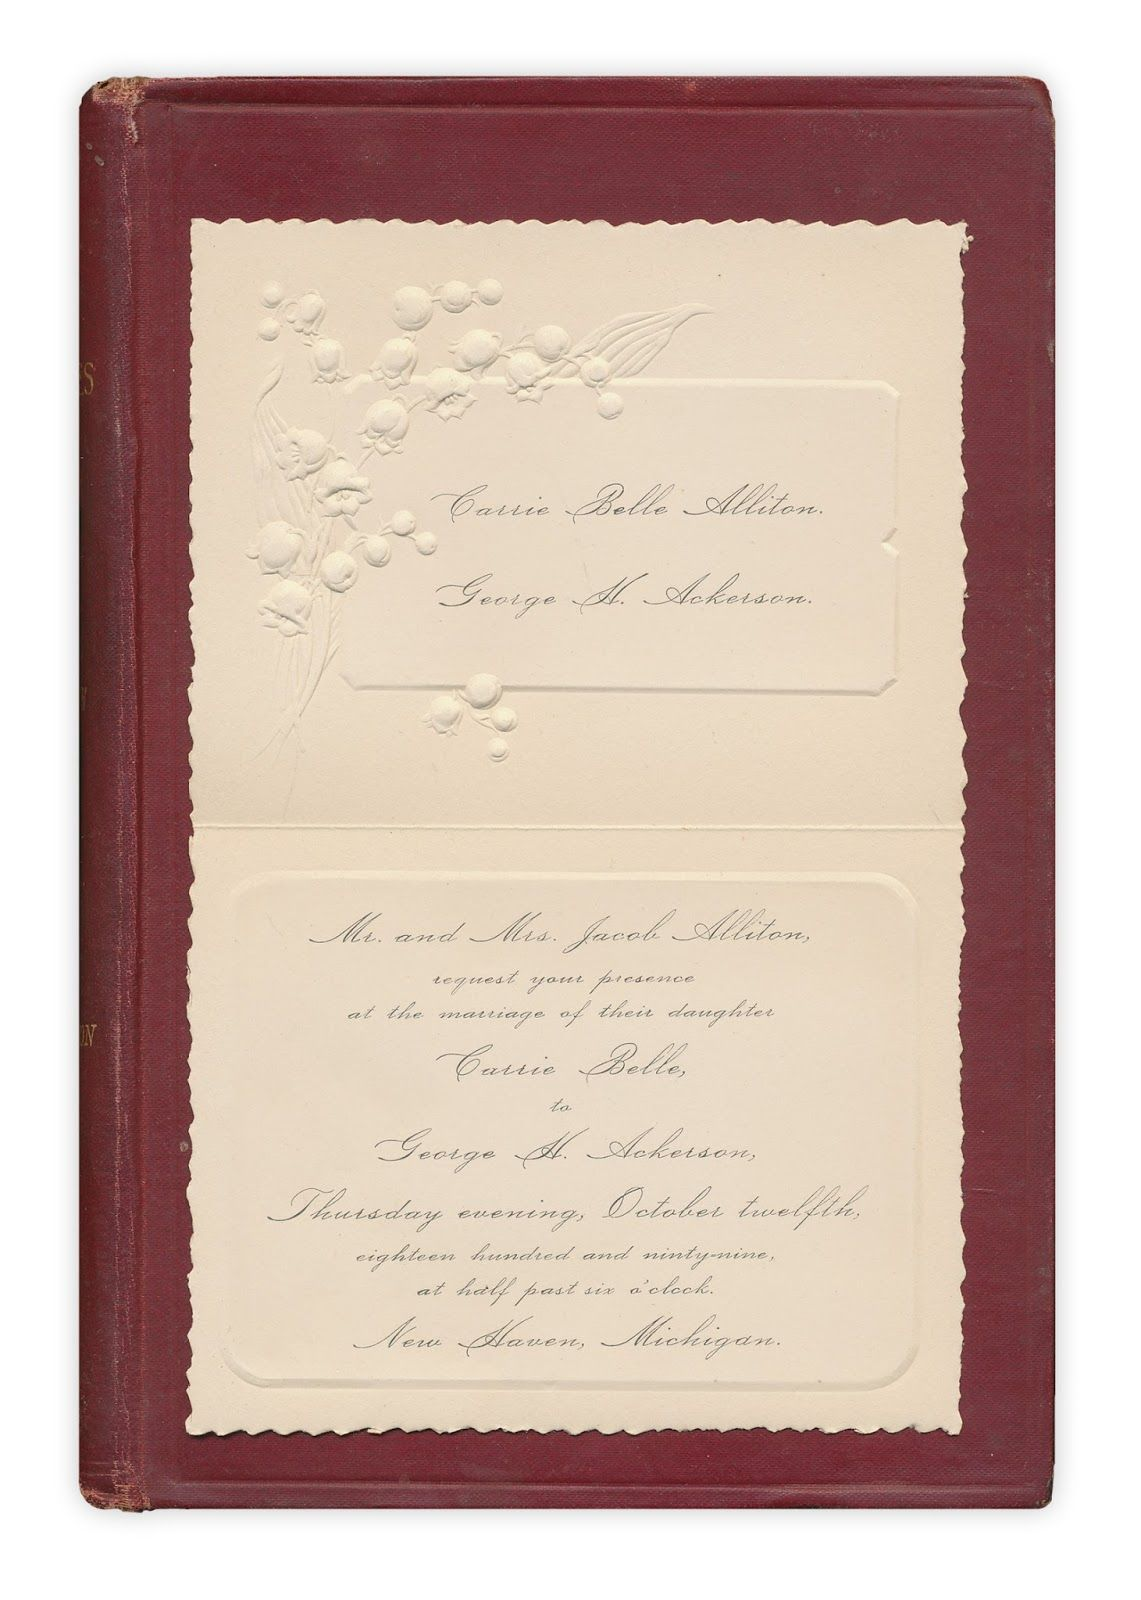 Your presence is requested books wedding invitation carrie belle alliton george h ackerson mr and mrs jacob alliton request your presence at the marriage of their daughter carrie belle stopboris Gallery